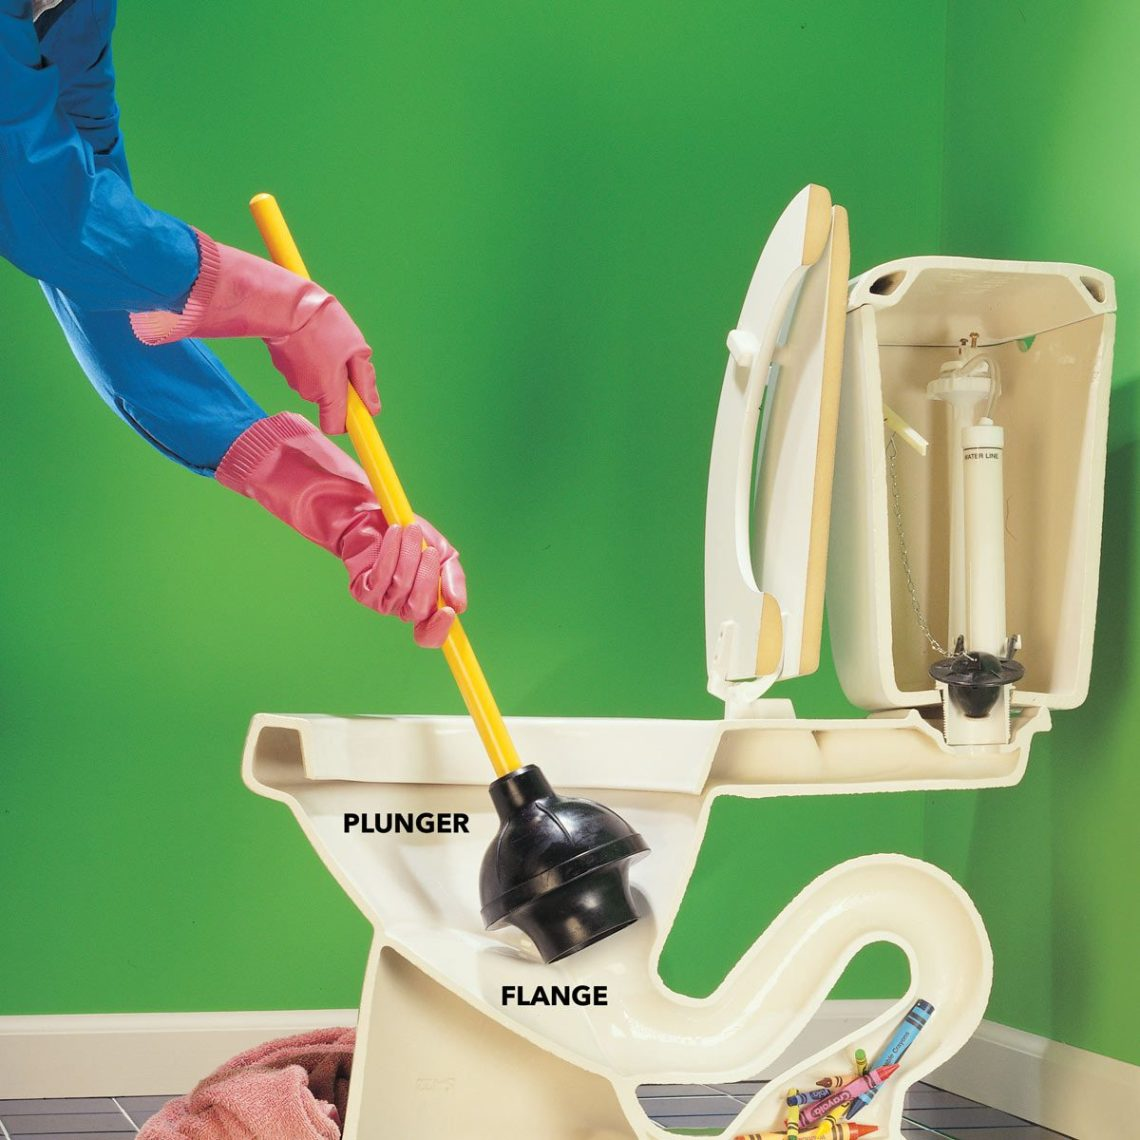 Image Result For How To Use A Plumbing Snake To Unclog A Toilet